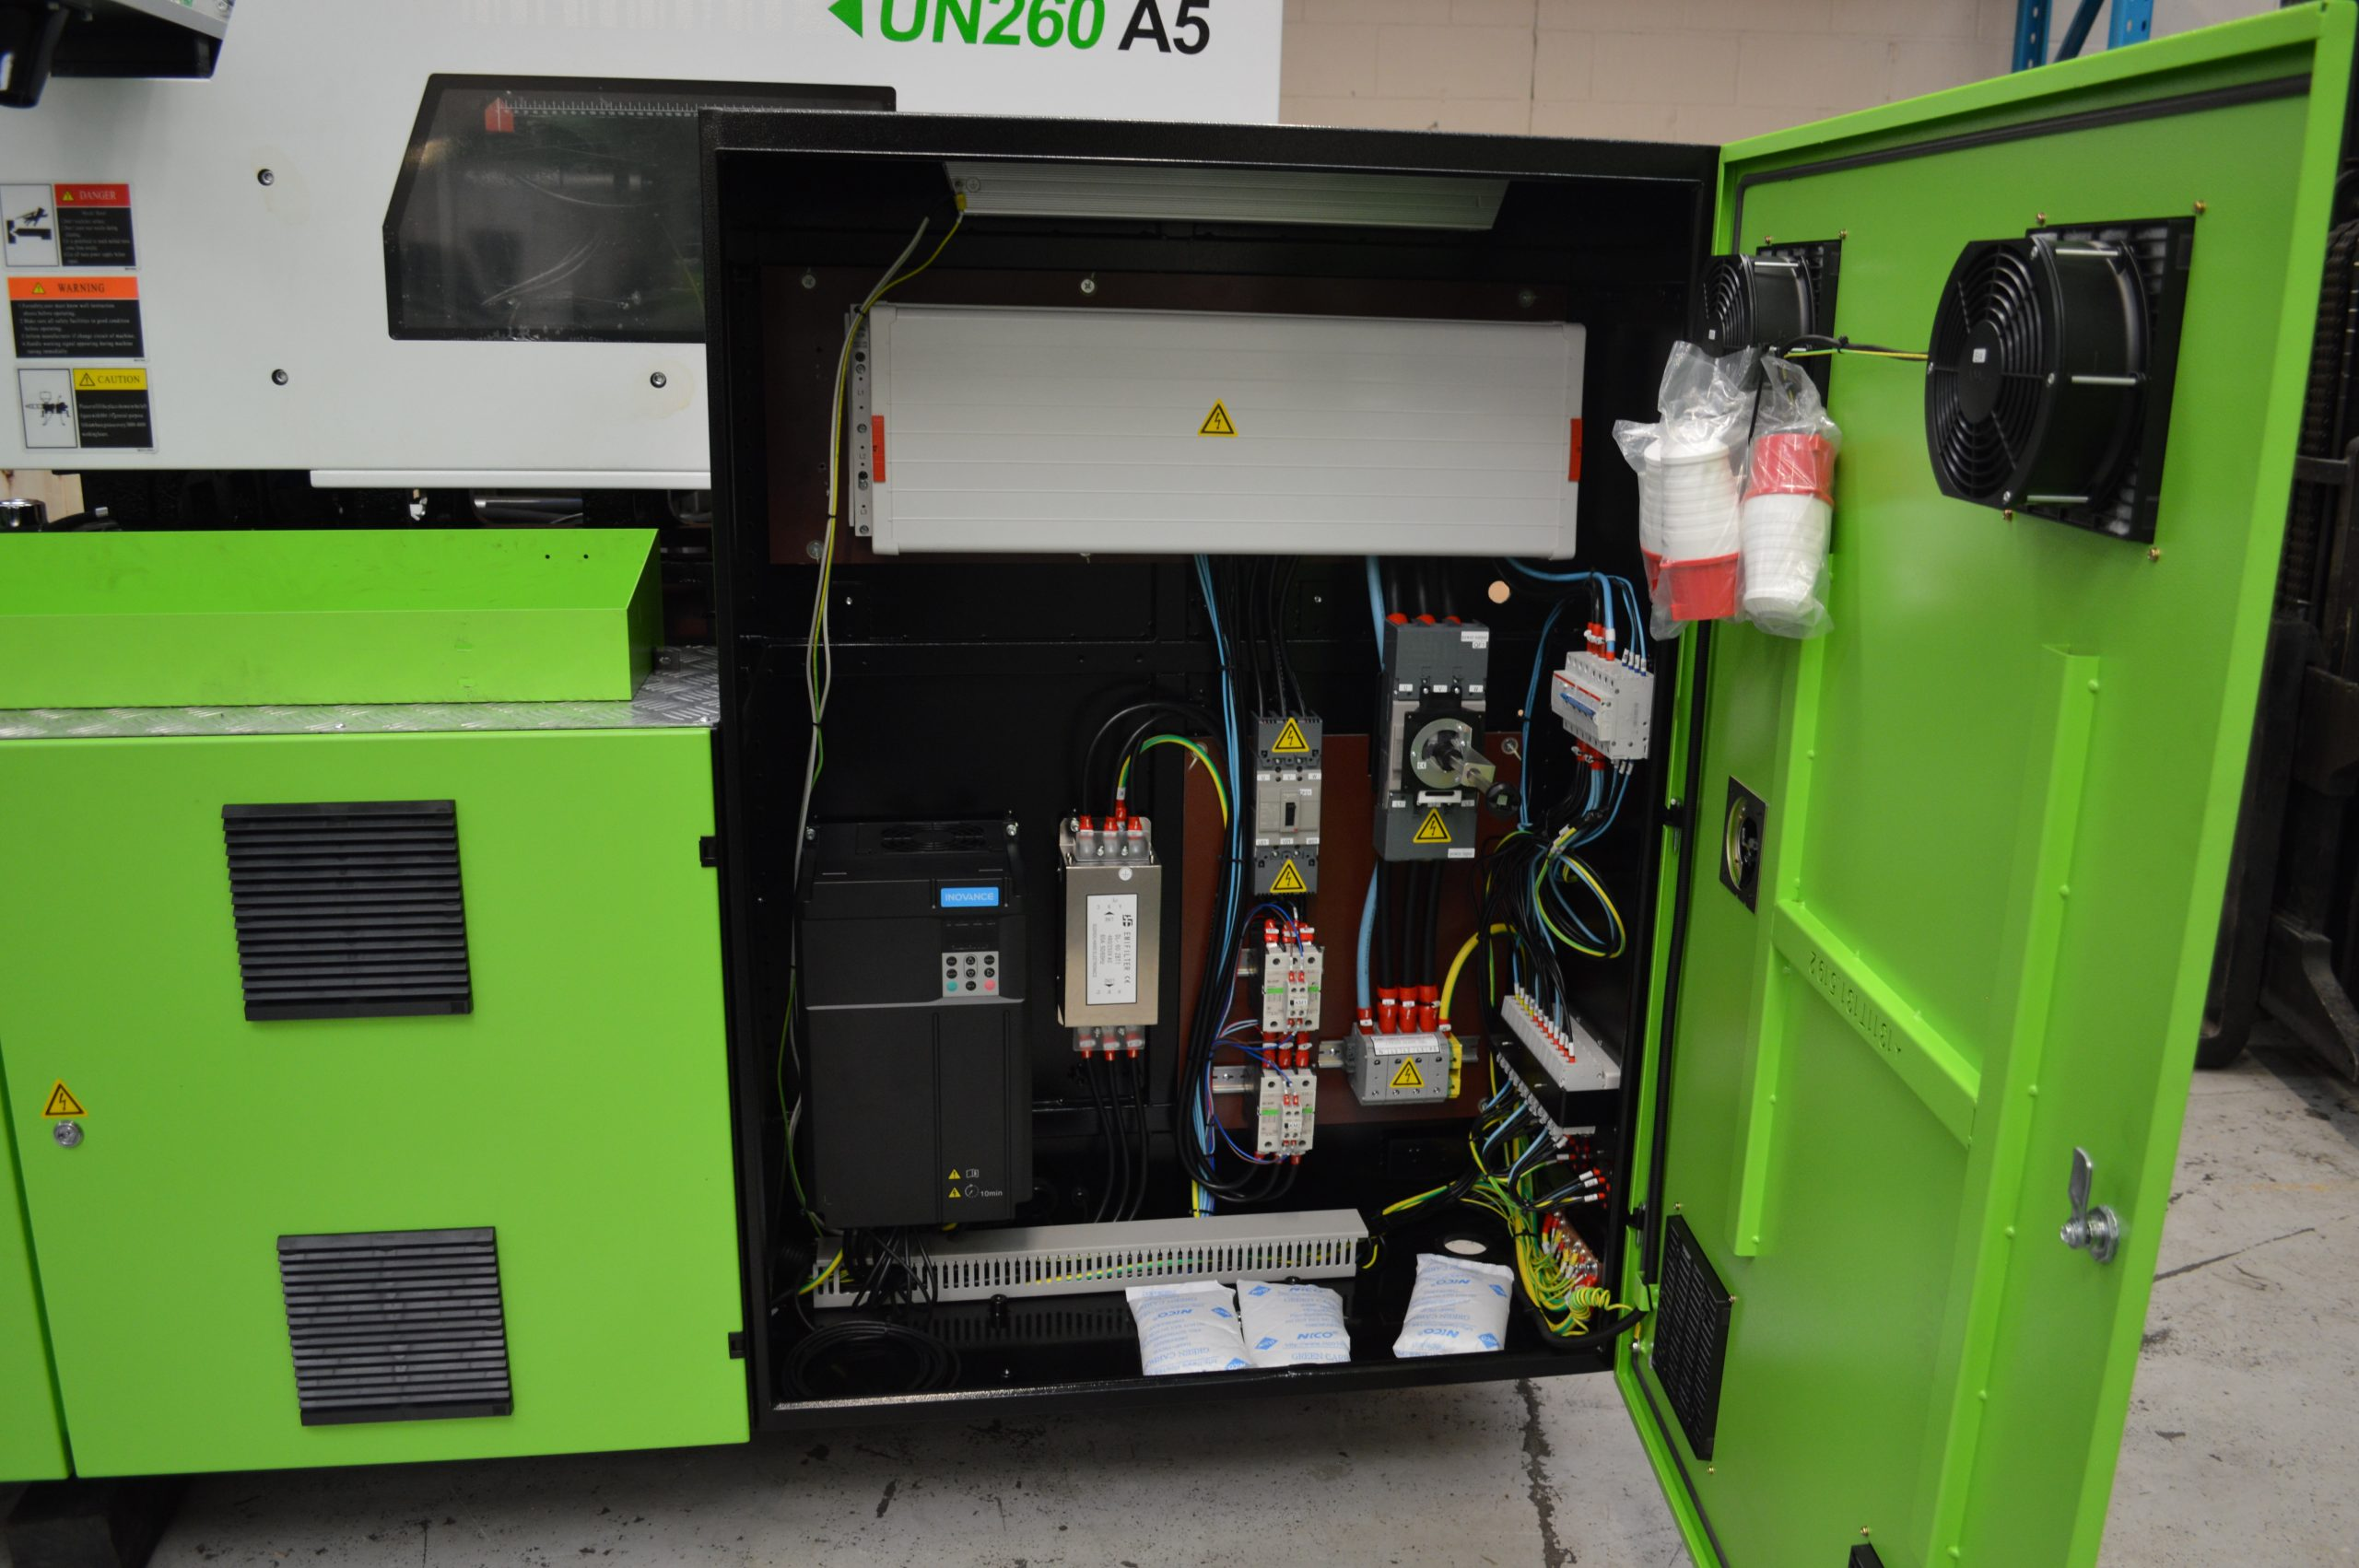 A5 electrical cabinet